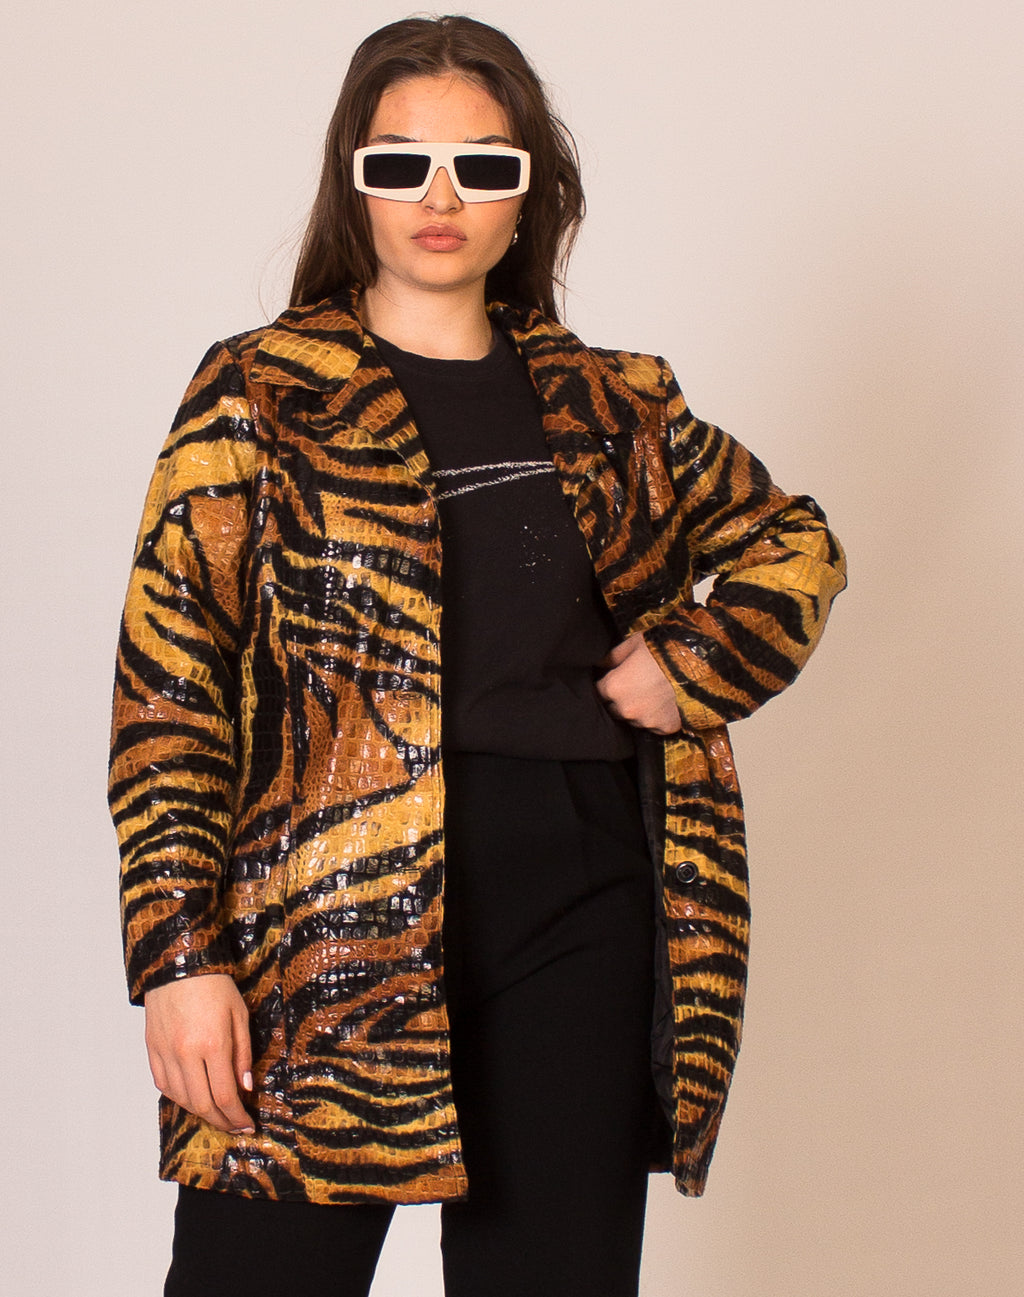 TIGER APPLIQUE JACKET